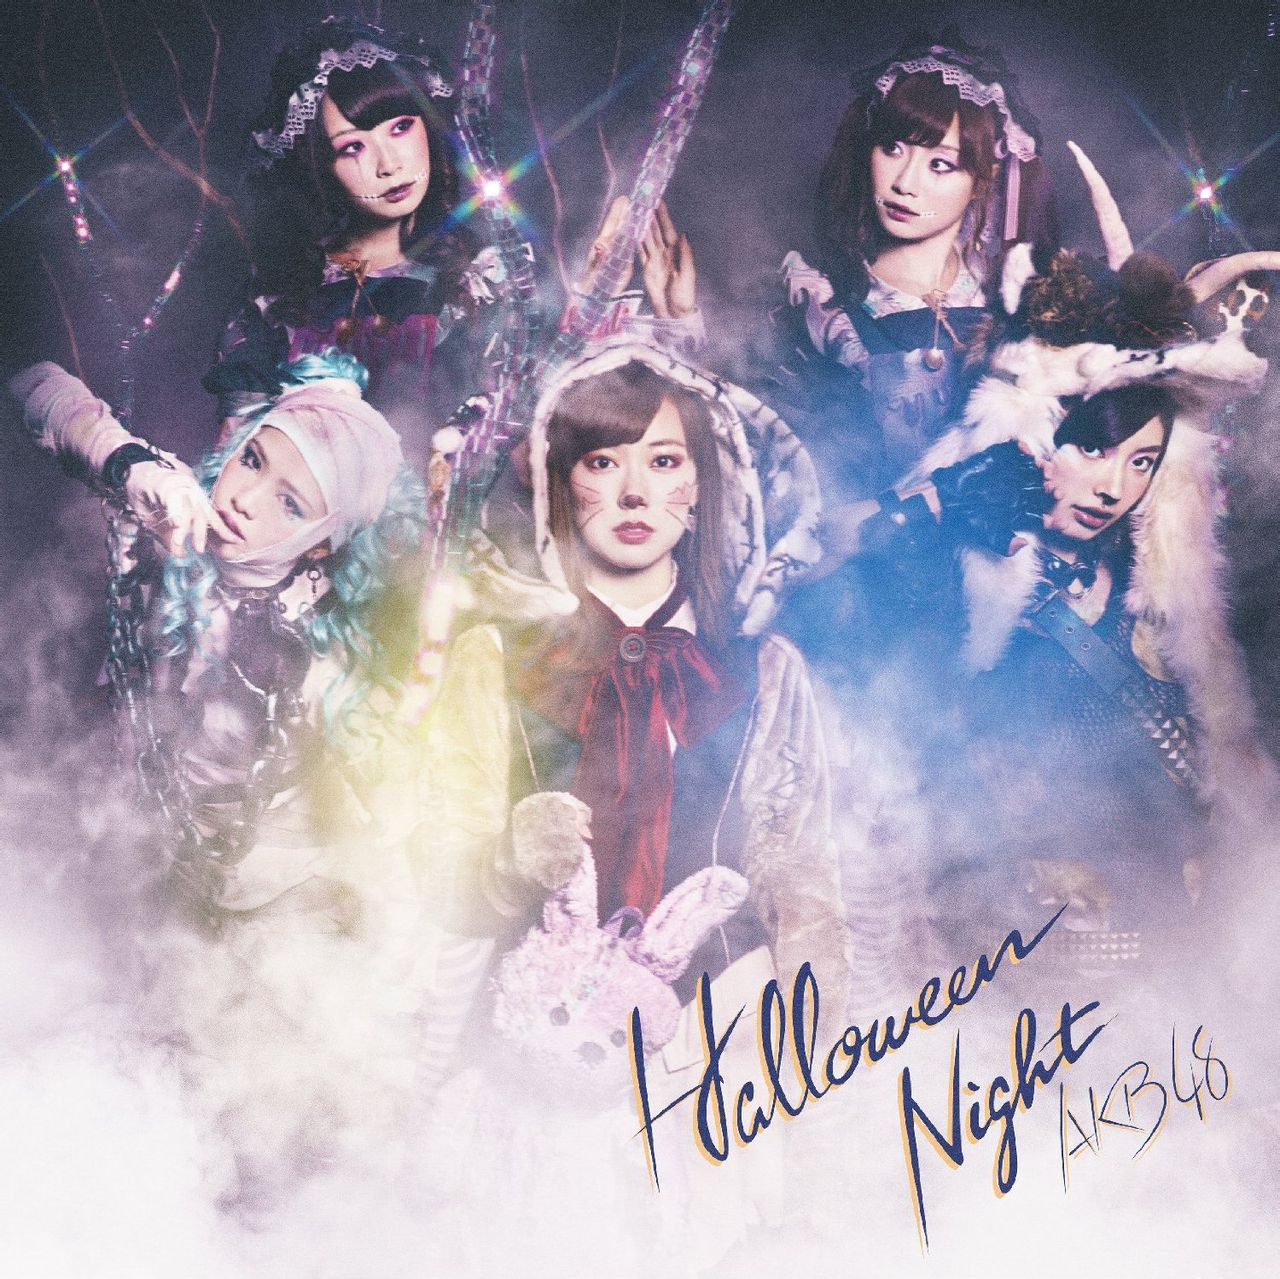 20161118.01.14 AKB48 - Halloween Night (Types A) cover 8.jpg